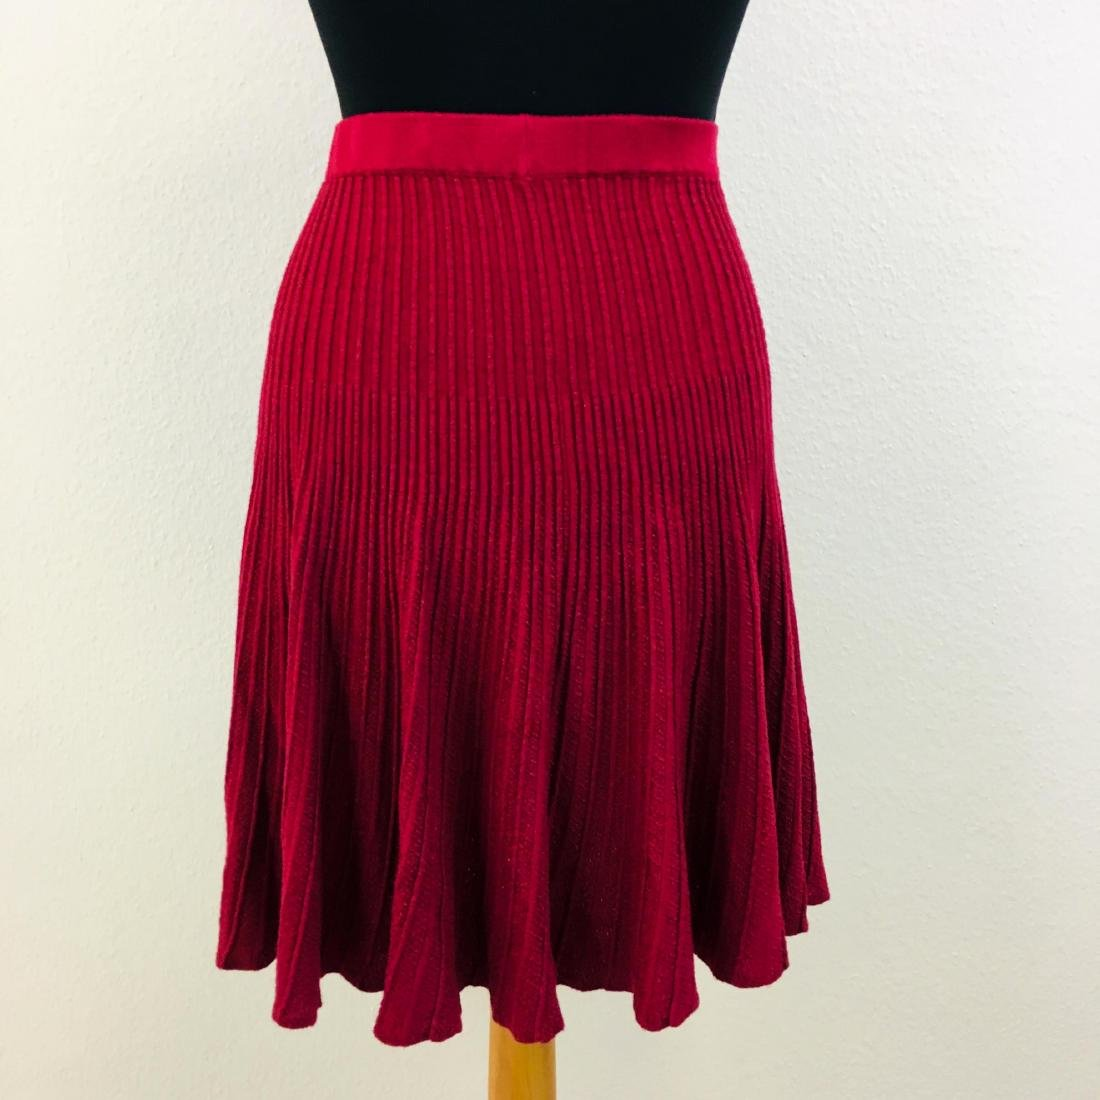 Vintage Women's Pleated Red Skirt - 4